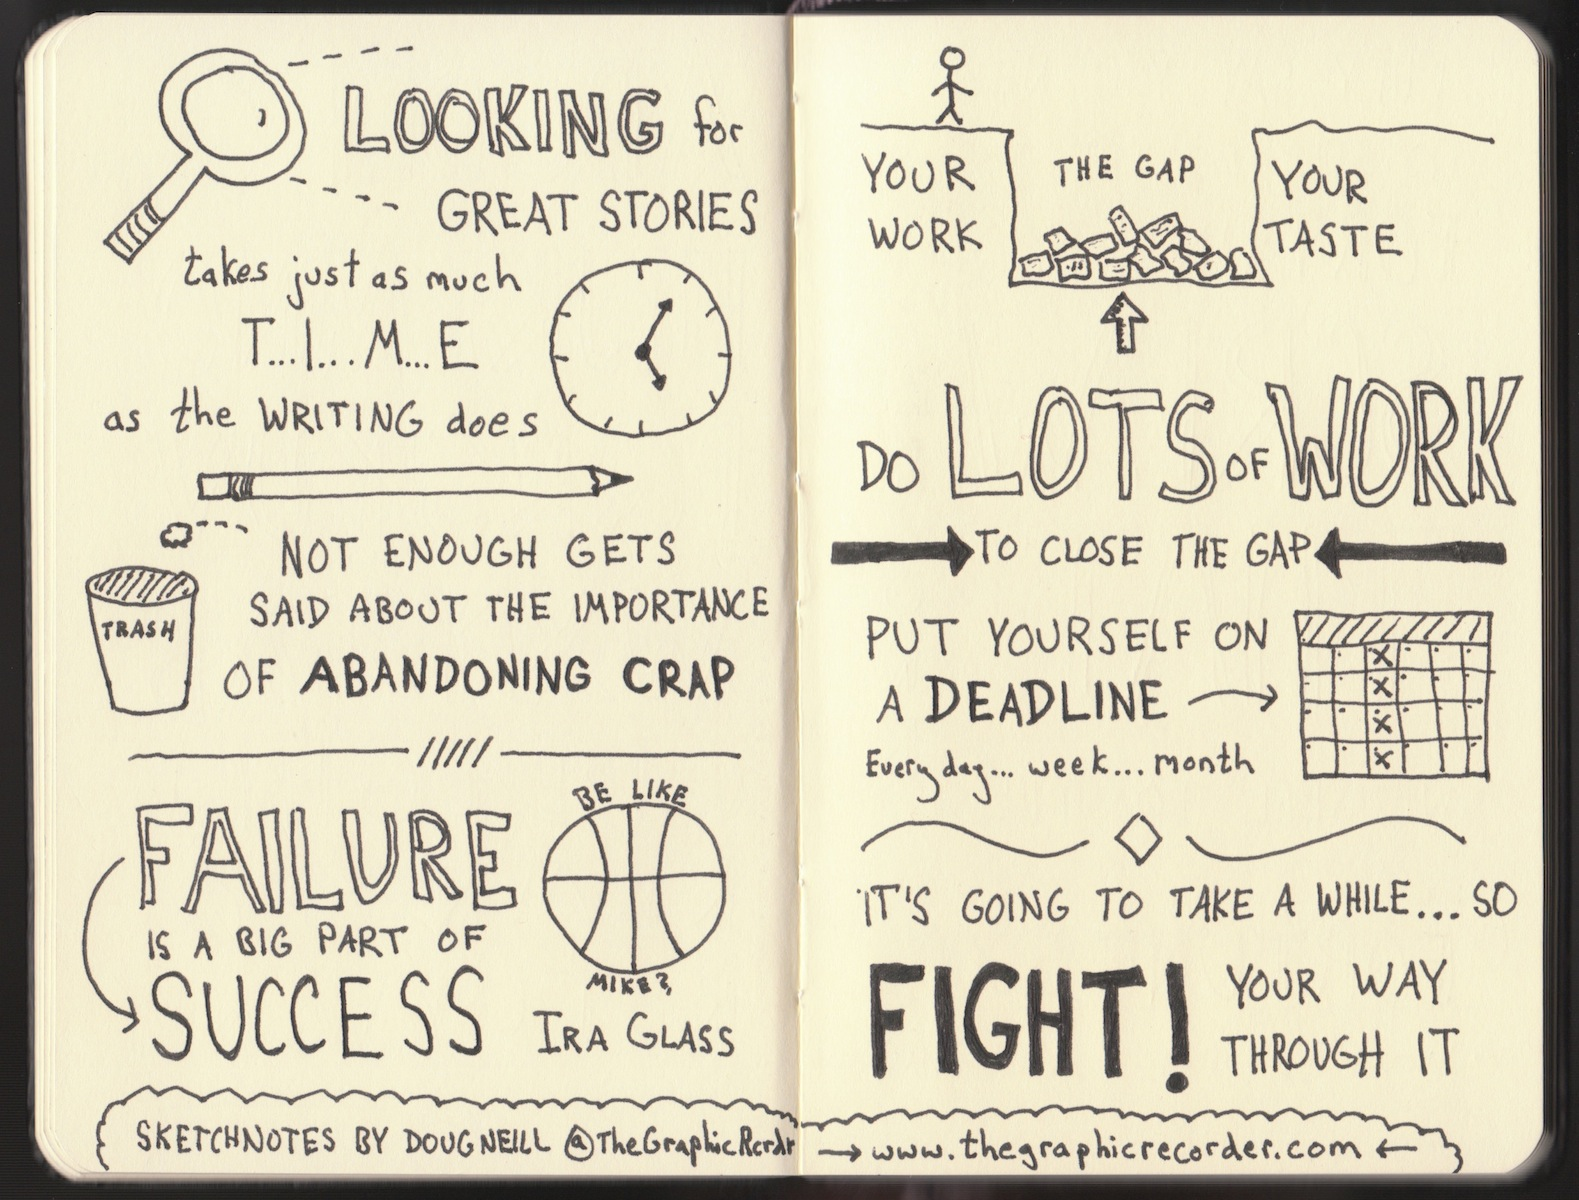 The Graphic Recorder - Doug Neill Sketchnotes - This American Life - Public Radio International - Ira Glass On Storytelling (2)